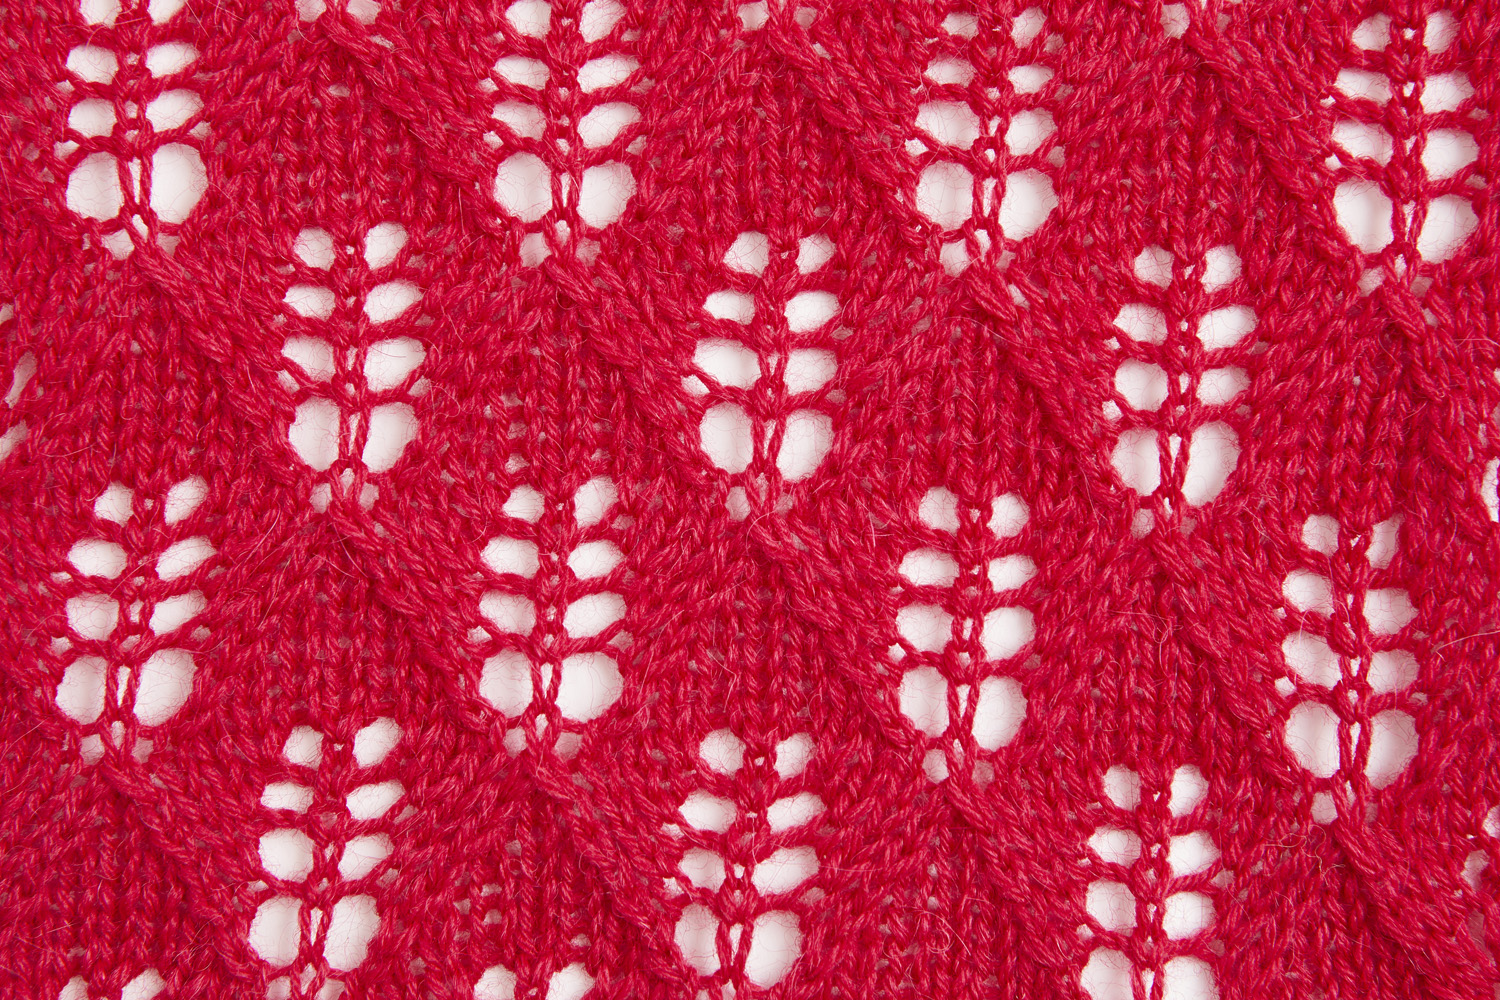 We developed a yarn that has great stitch definition and blocks beautifully for lace. Image © Jesse Wild.